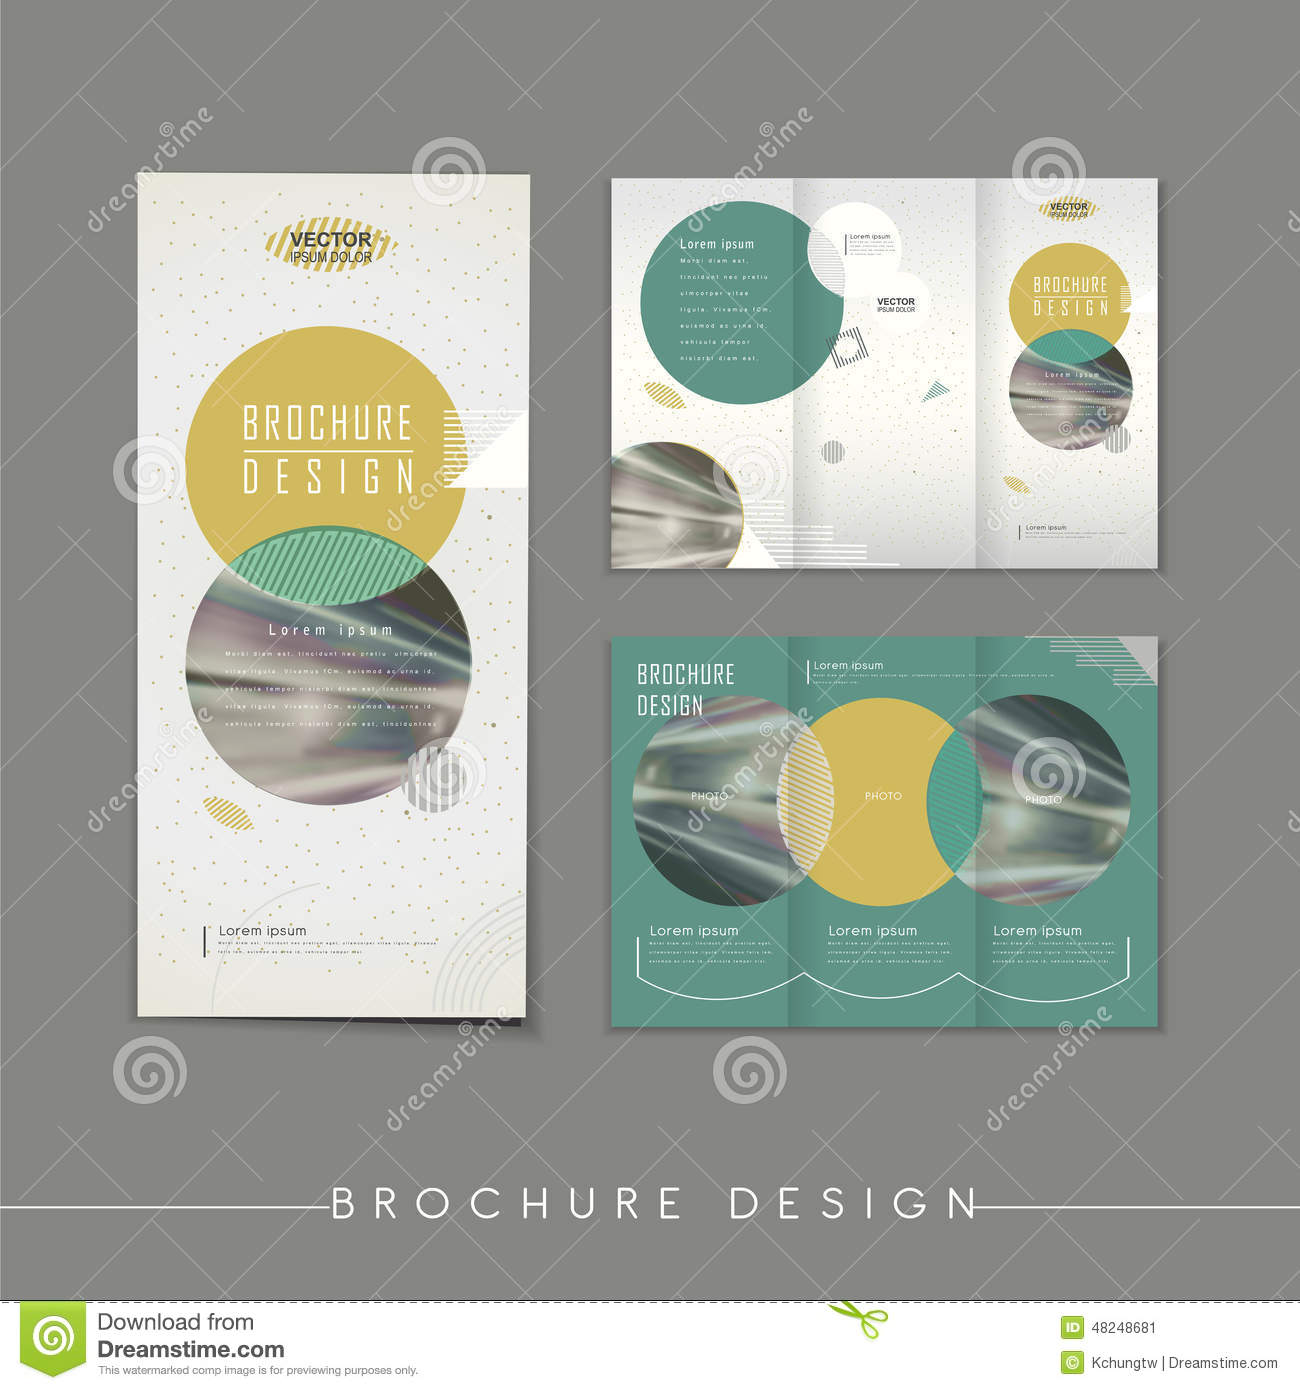 Delighted 1 2 3 Nu Opgaver Kapitel Resume Big 1 Page Resume Templates Clean 1 Week Calendar Template 1.5 Button Template Youthful 10 Best Resume Templates Fresh100 Chart Template Tri Fold Brochure Template Design Stock Vector   Image: 44141774